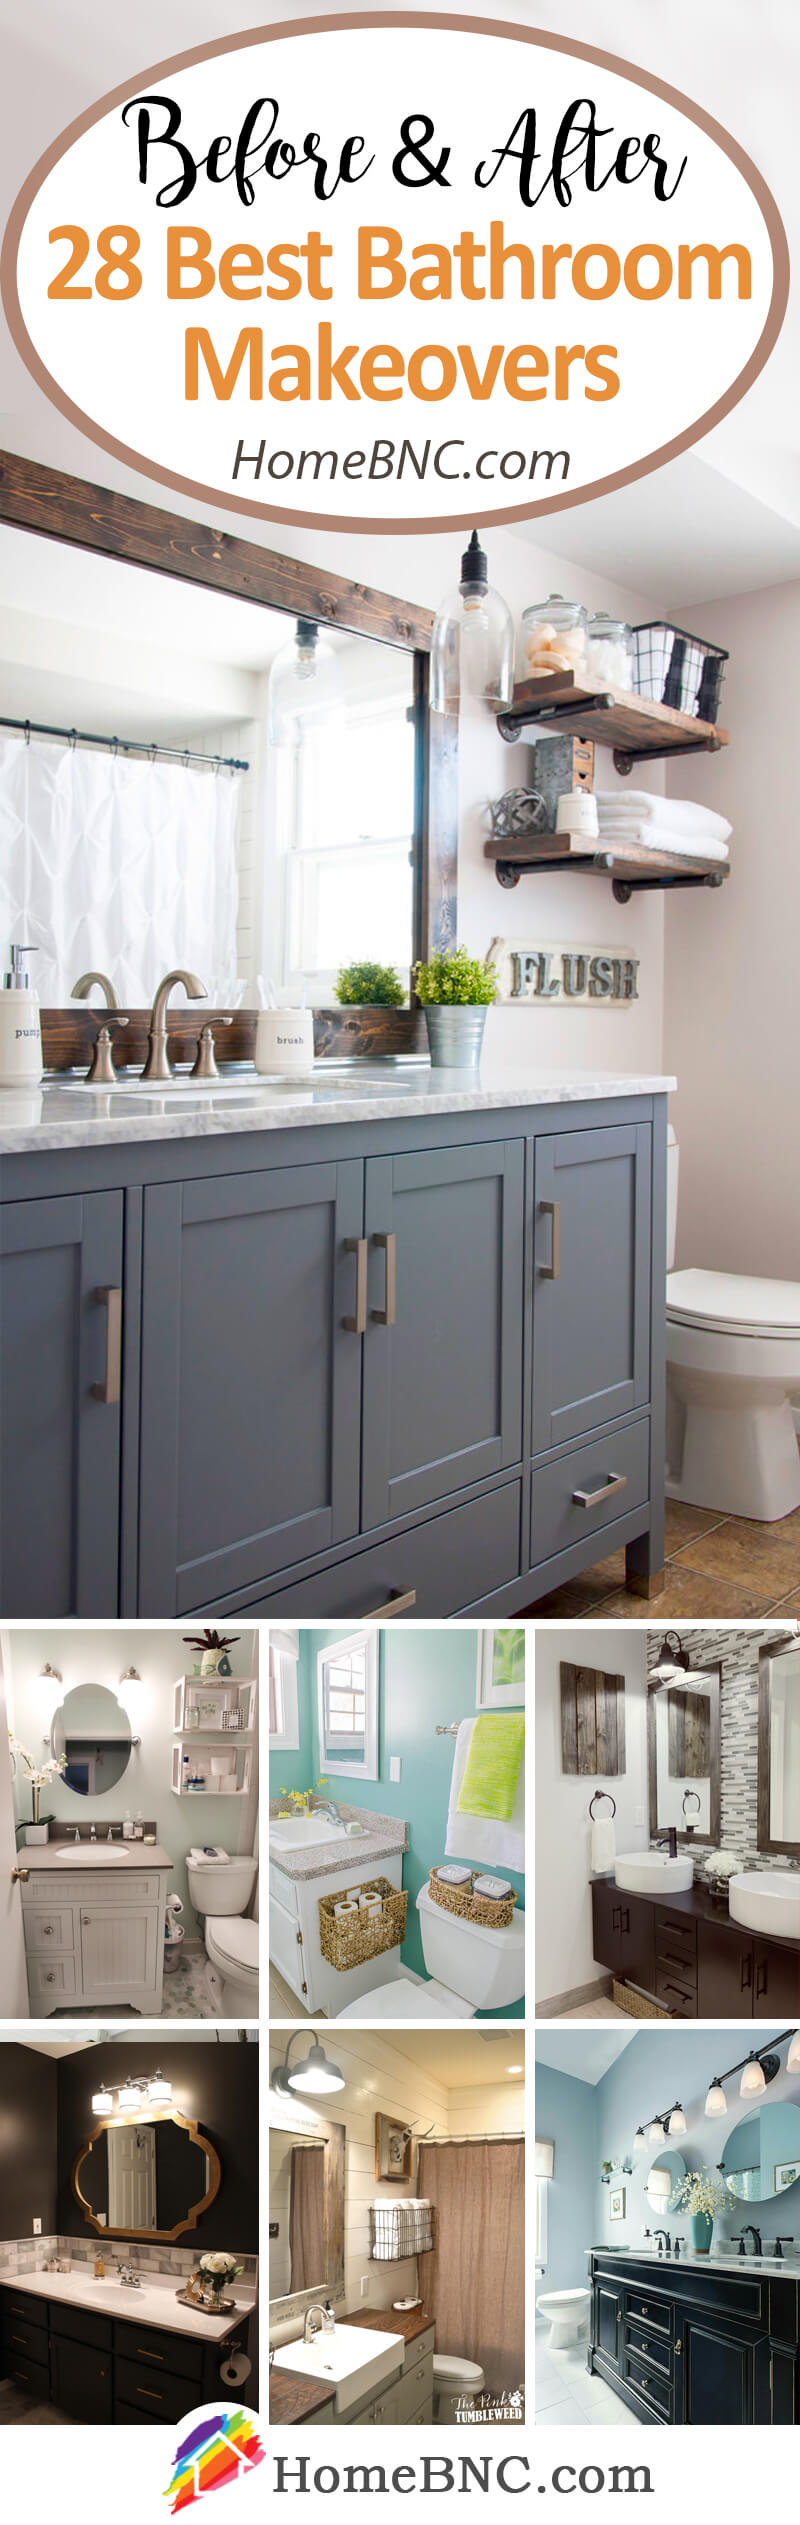 28 Best Budget Friendly Bathroom Makeover Ideas And Designs For 2021